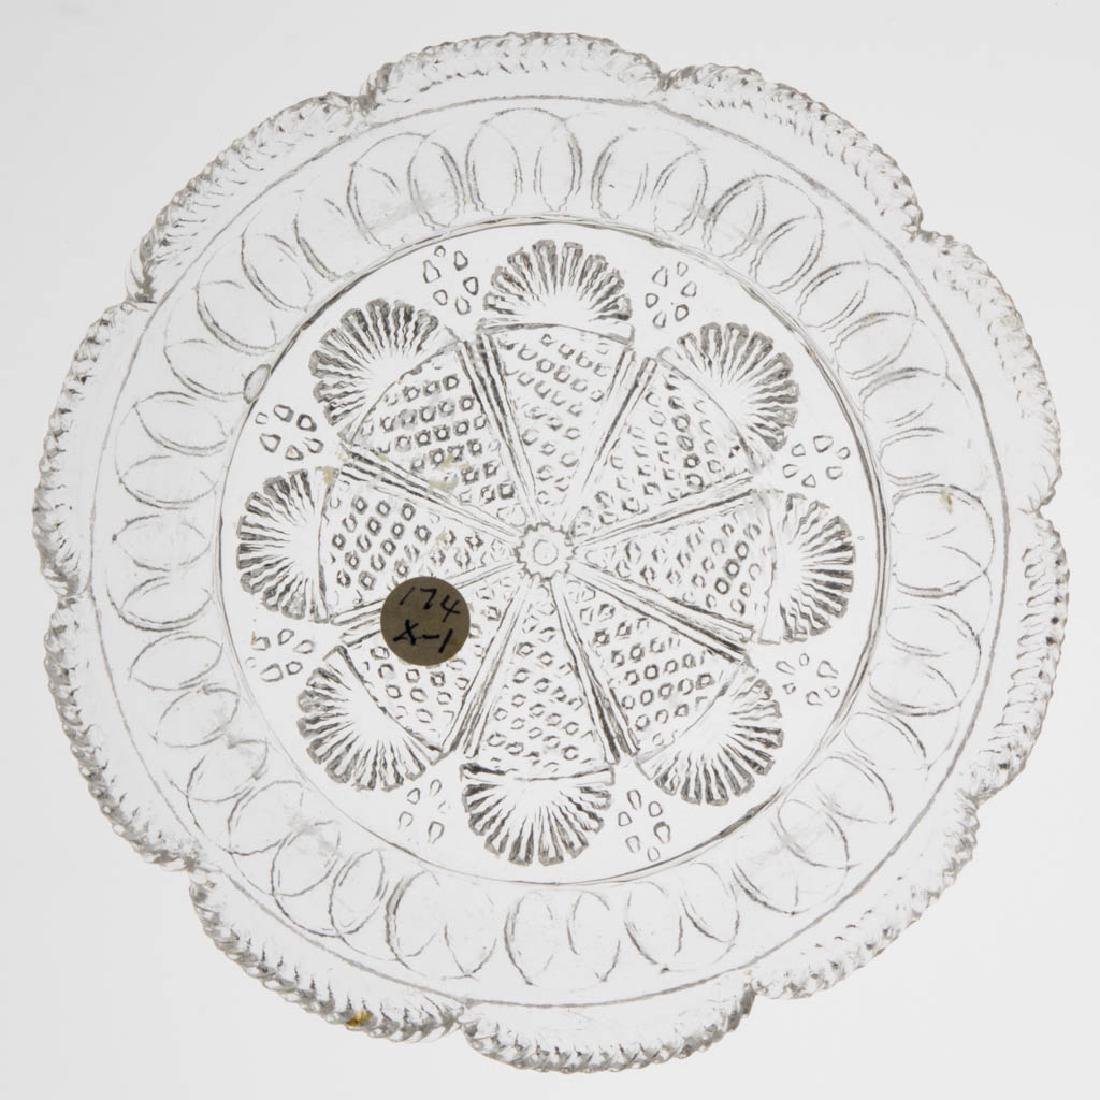 LEE/ROSE NO. 174-X-1 CUP PLATE